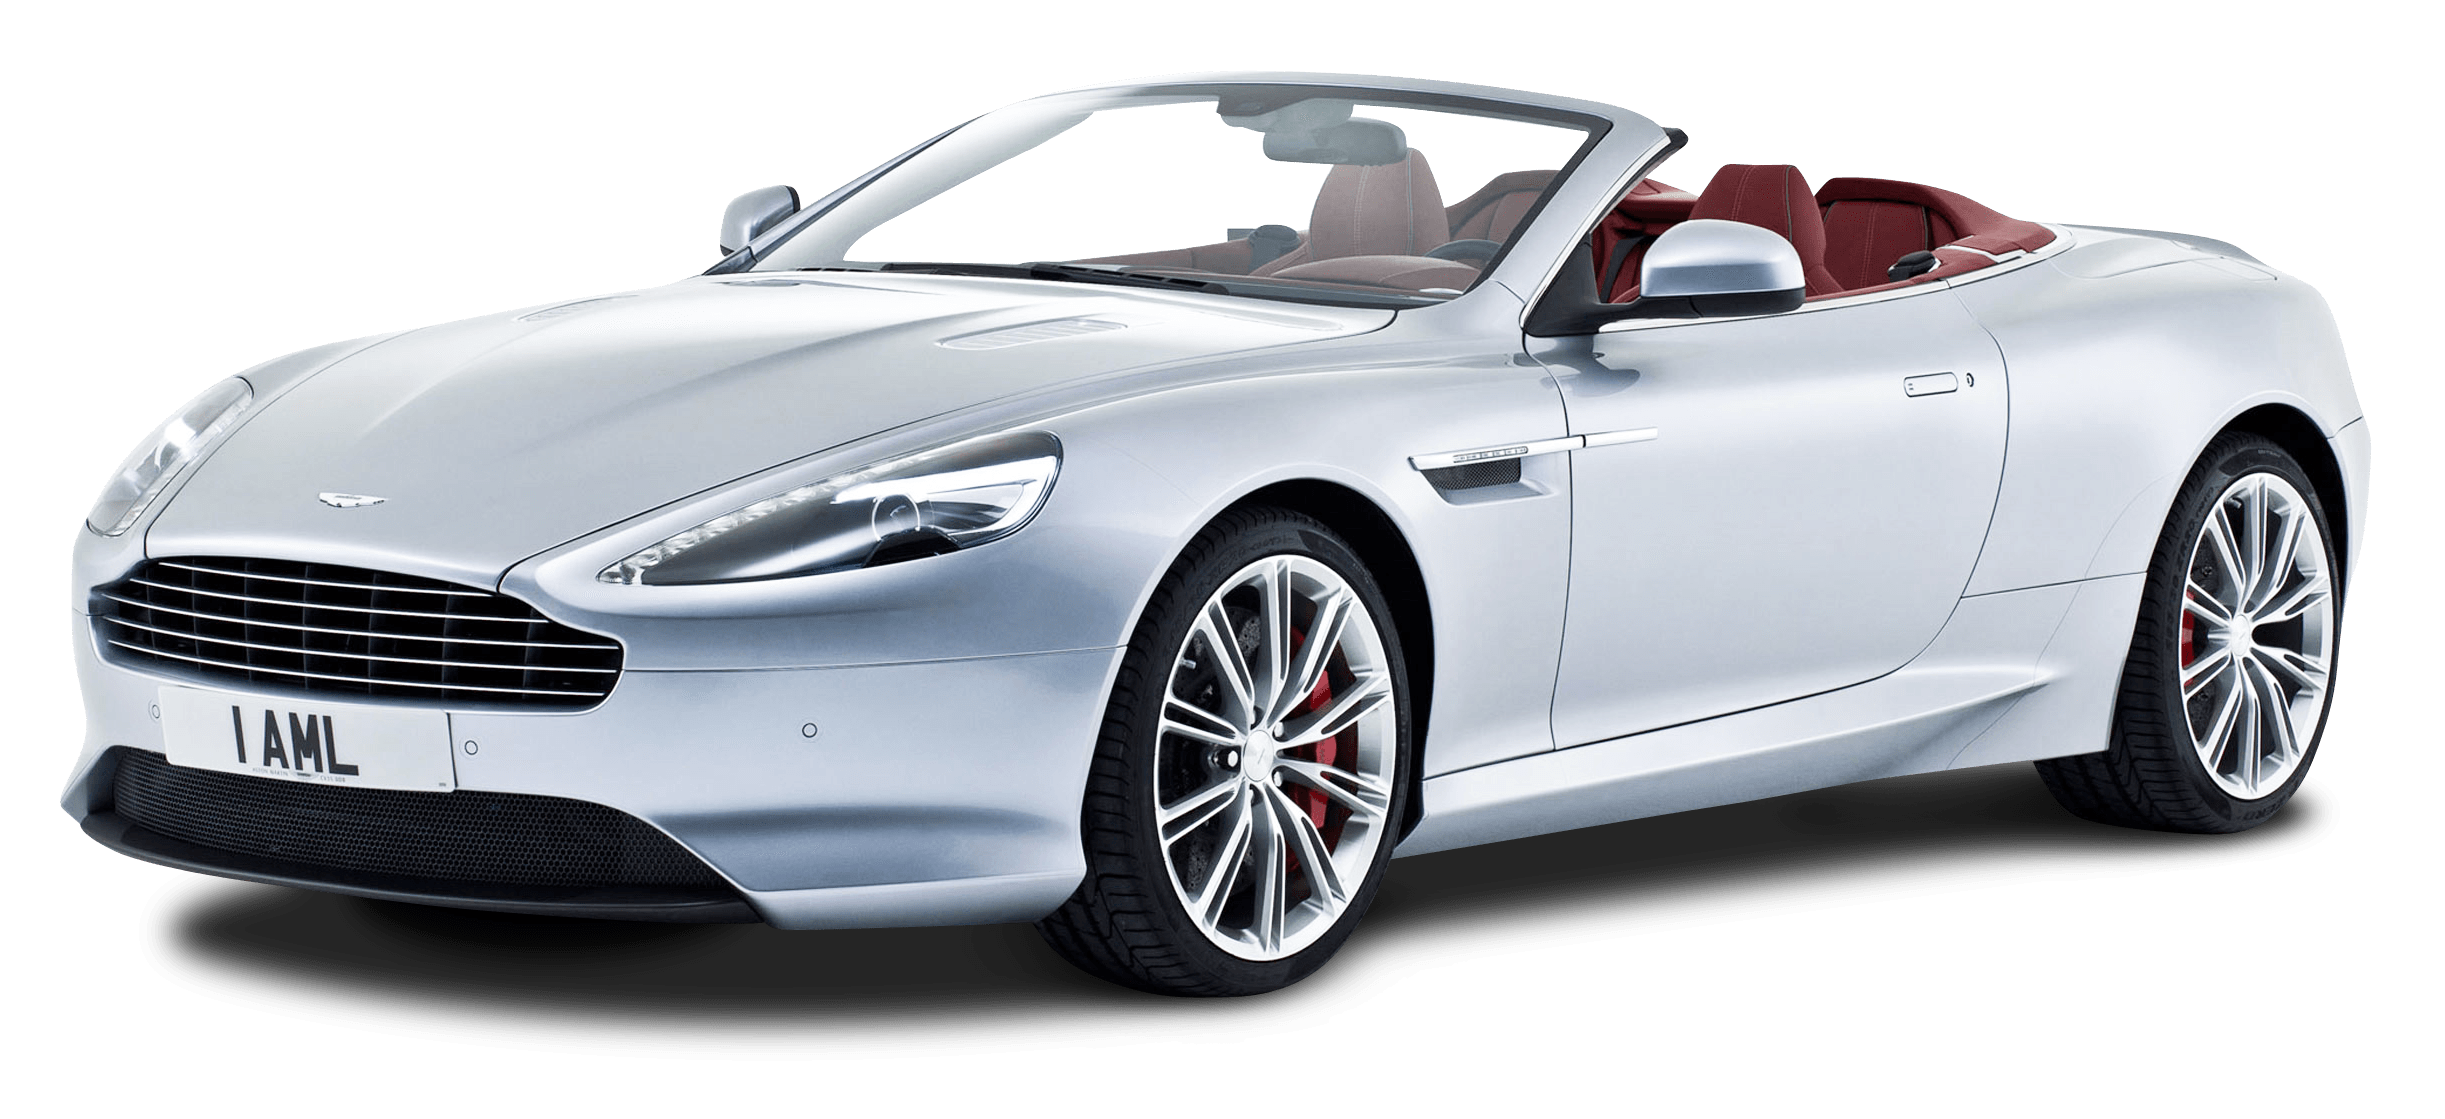 PNG Aston Martin White Convertible Car Png 27472